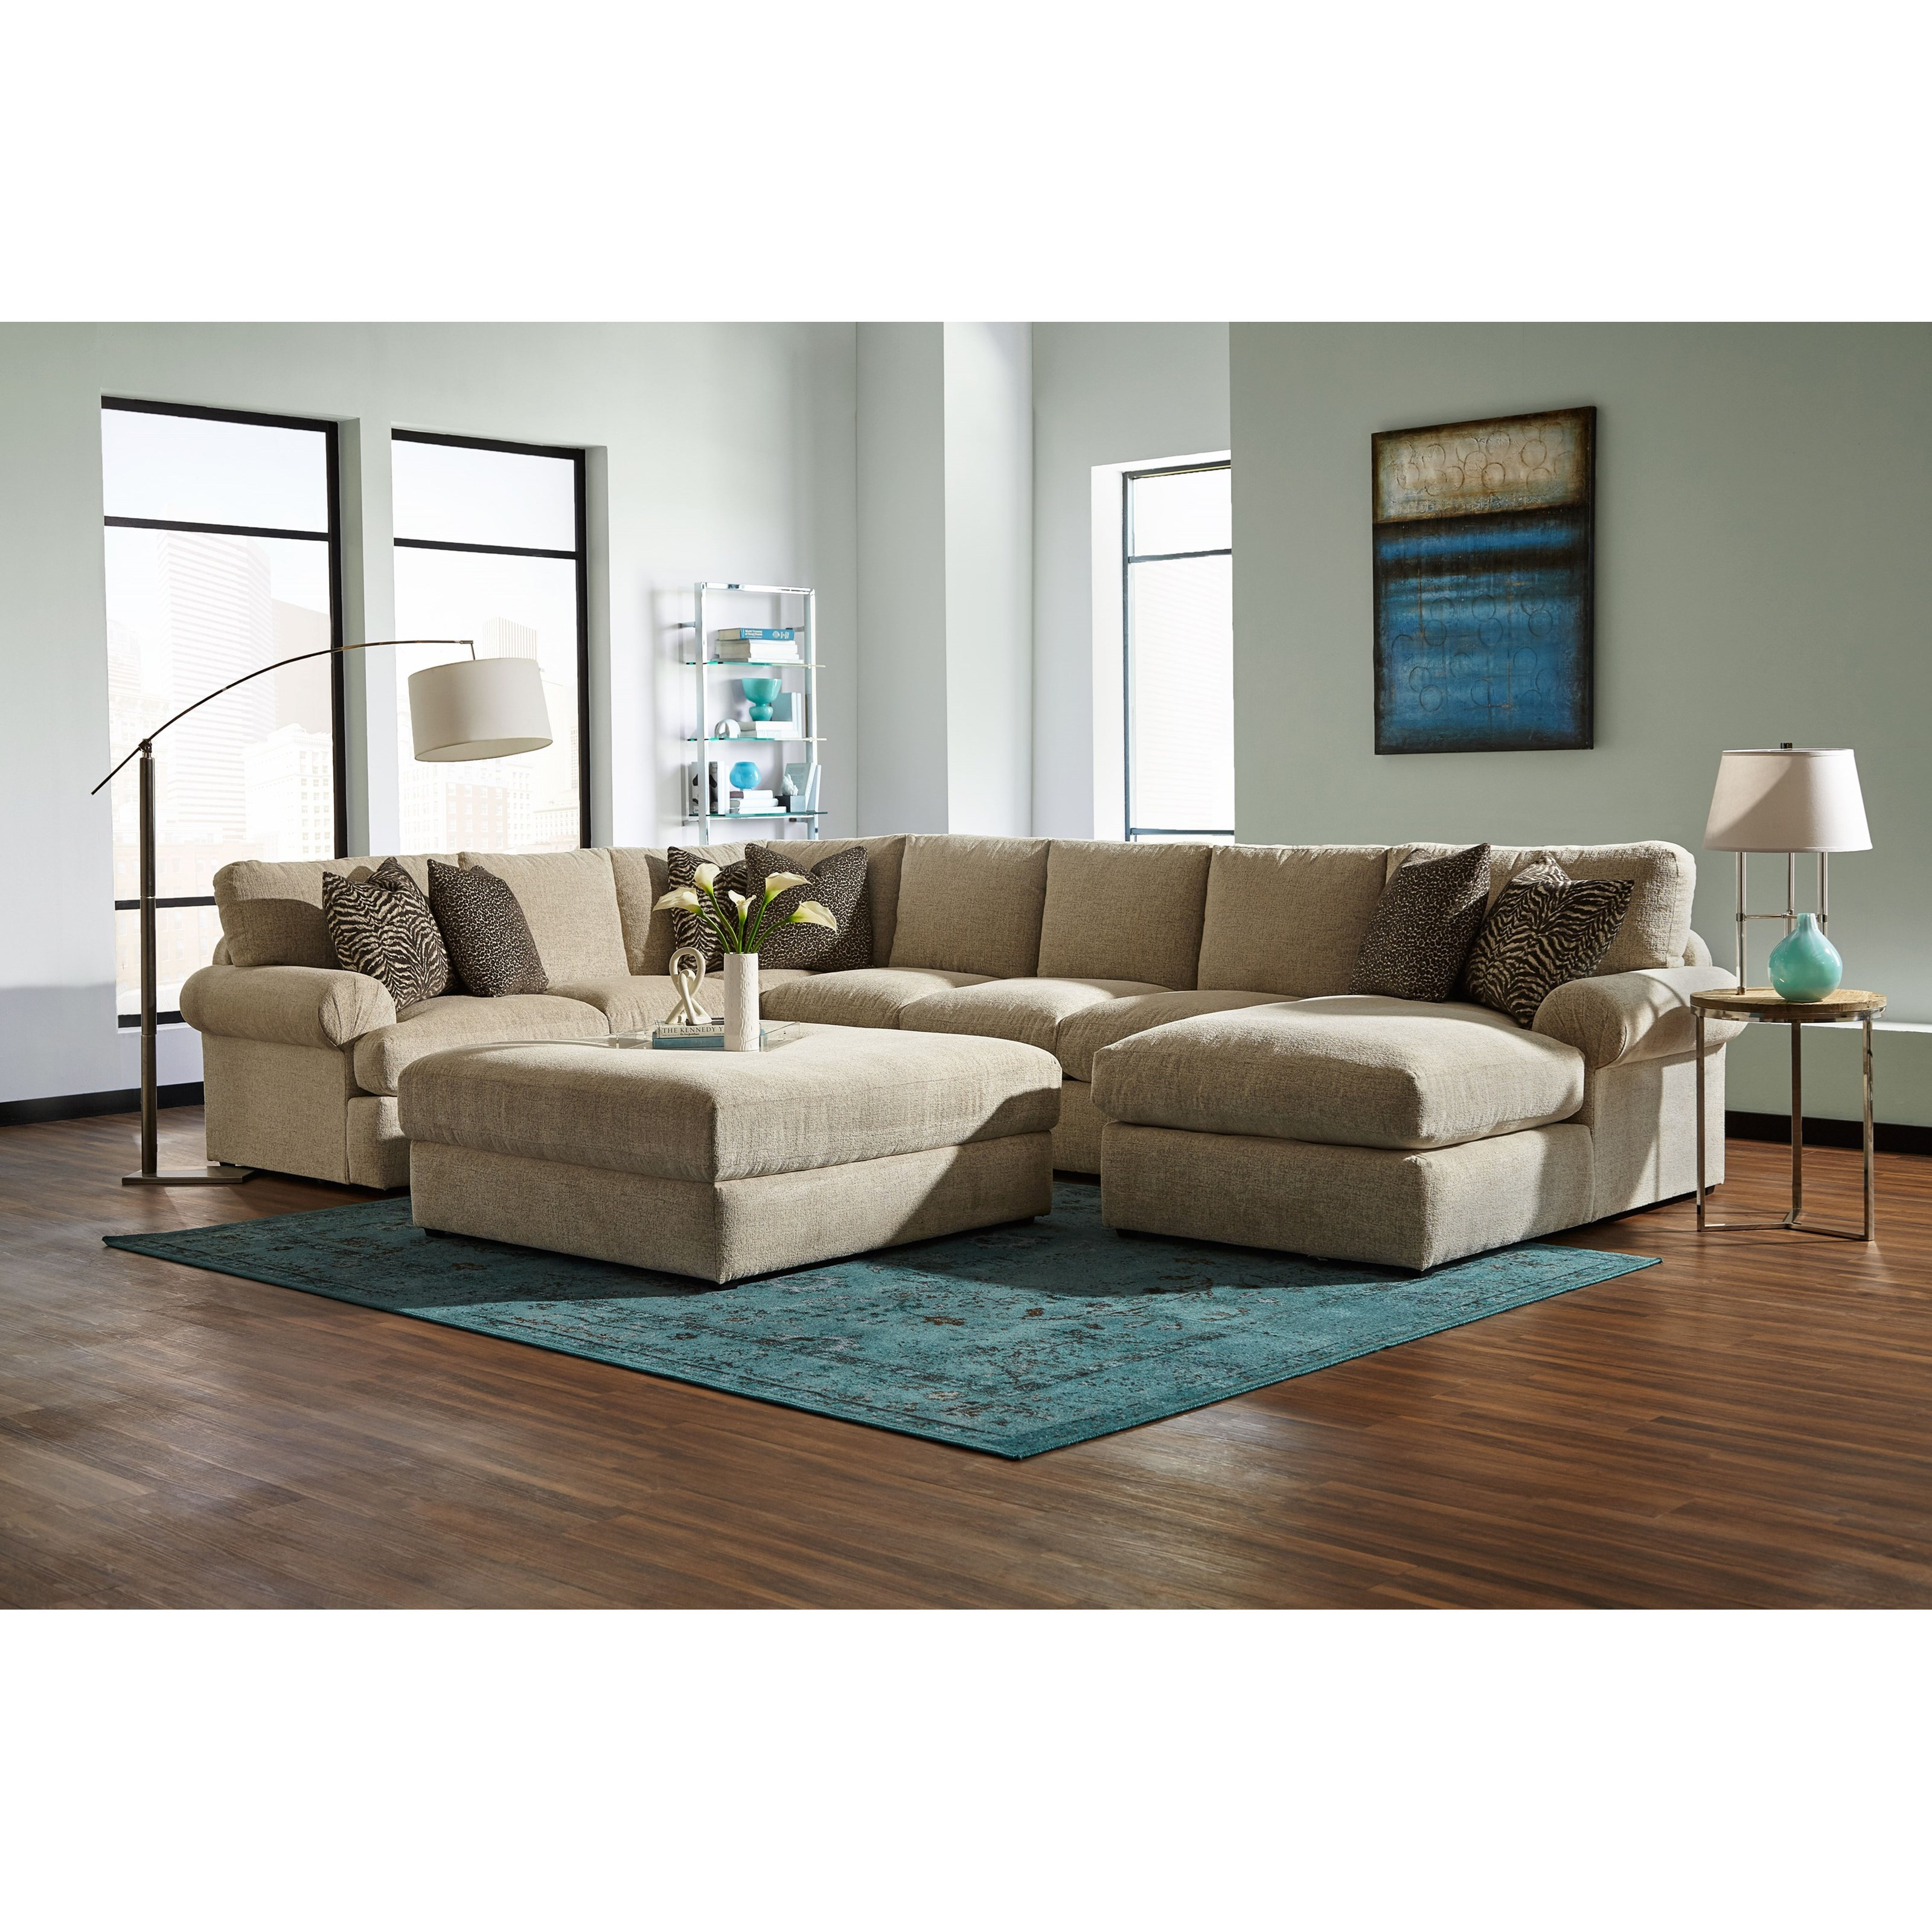 329 Living Room Group by Stanton at Wilson's Furniture